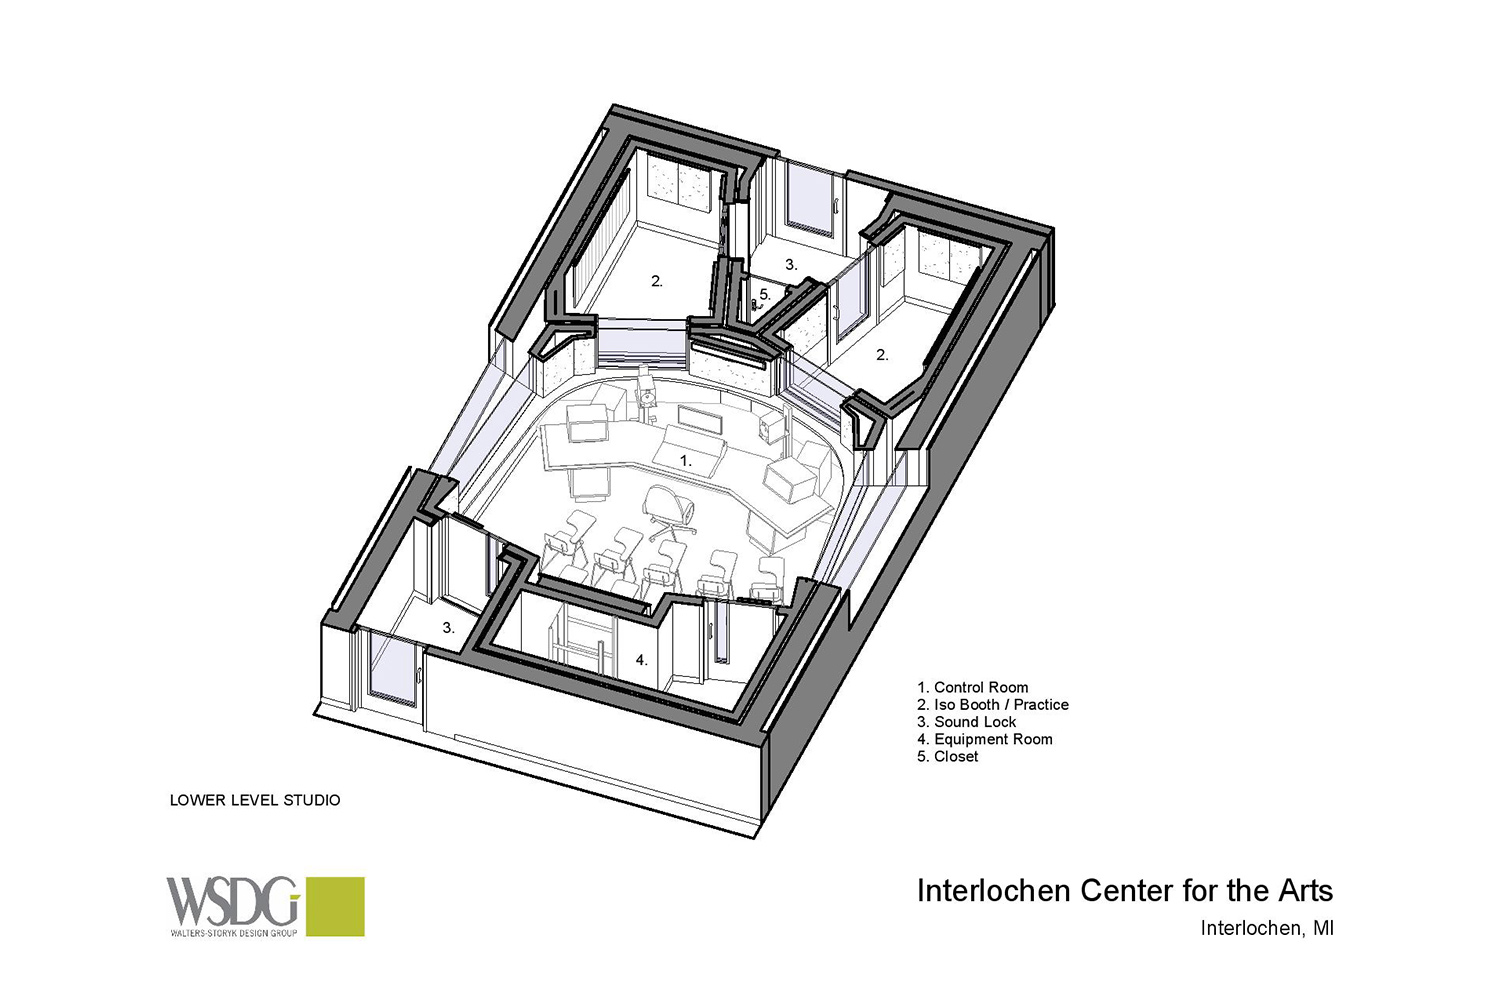 Interlochen has recently completed their new complex. A key component of the new complex is a state-of-the-art recording/teaching studio complex developed by WSDG. Presentation drawing 1, floor level axonometric view.